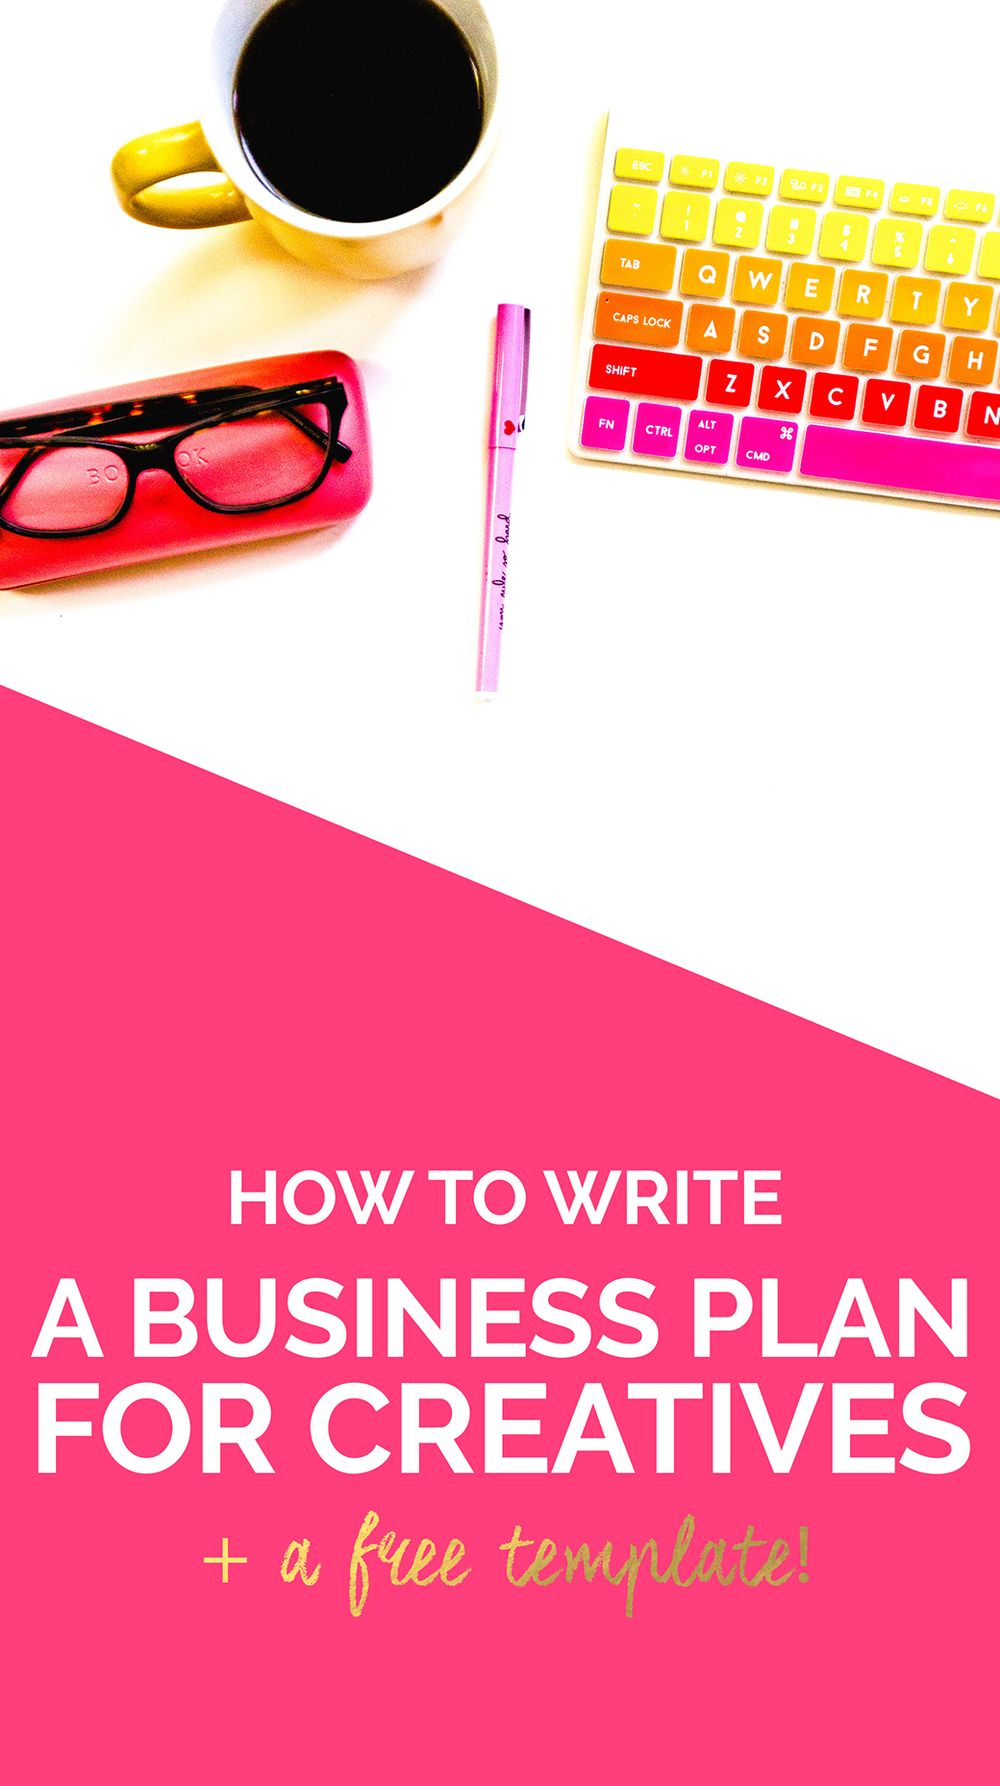 How to Write a Business Plan for Creatives (+ a free